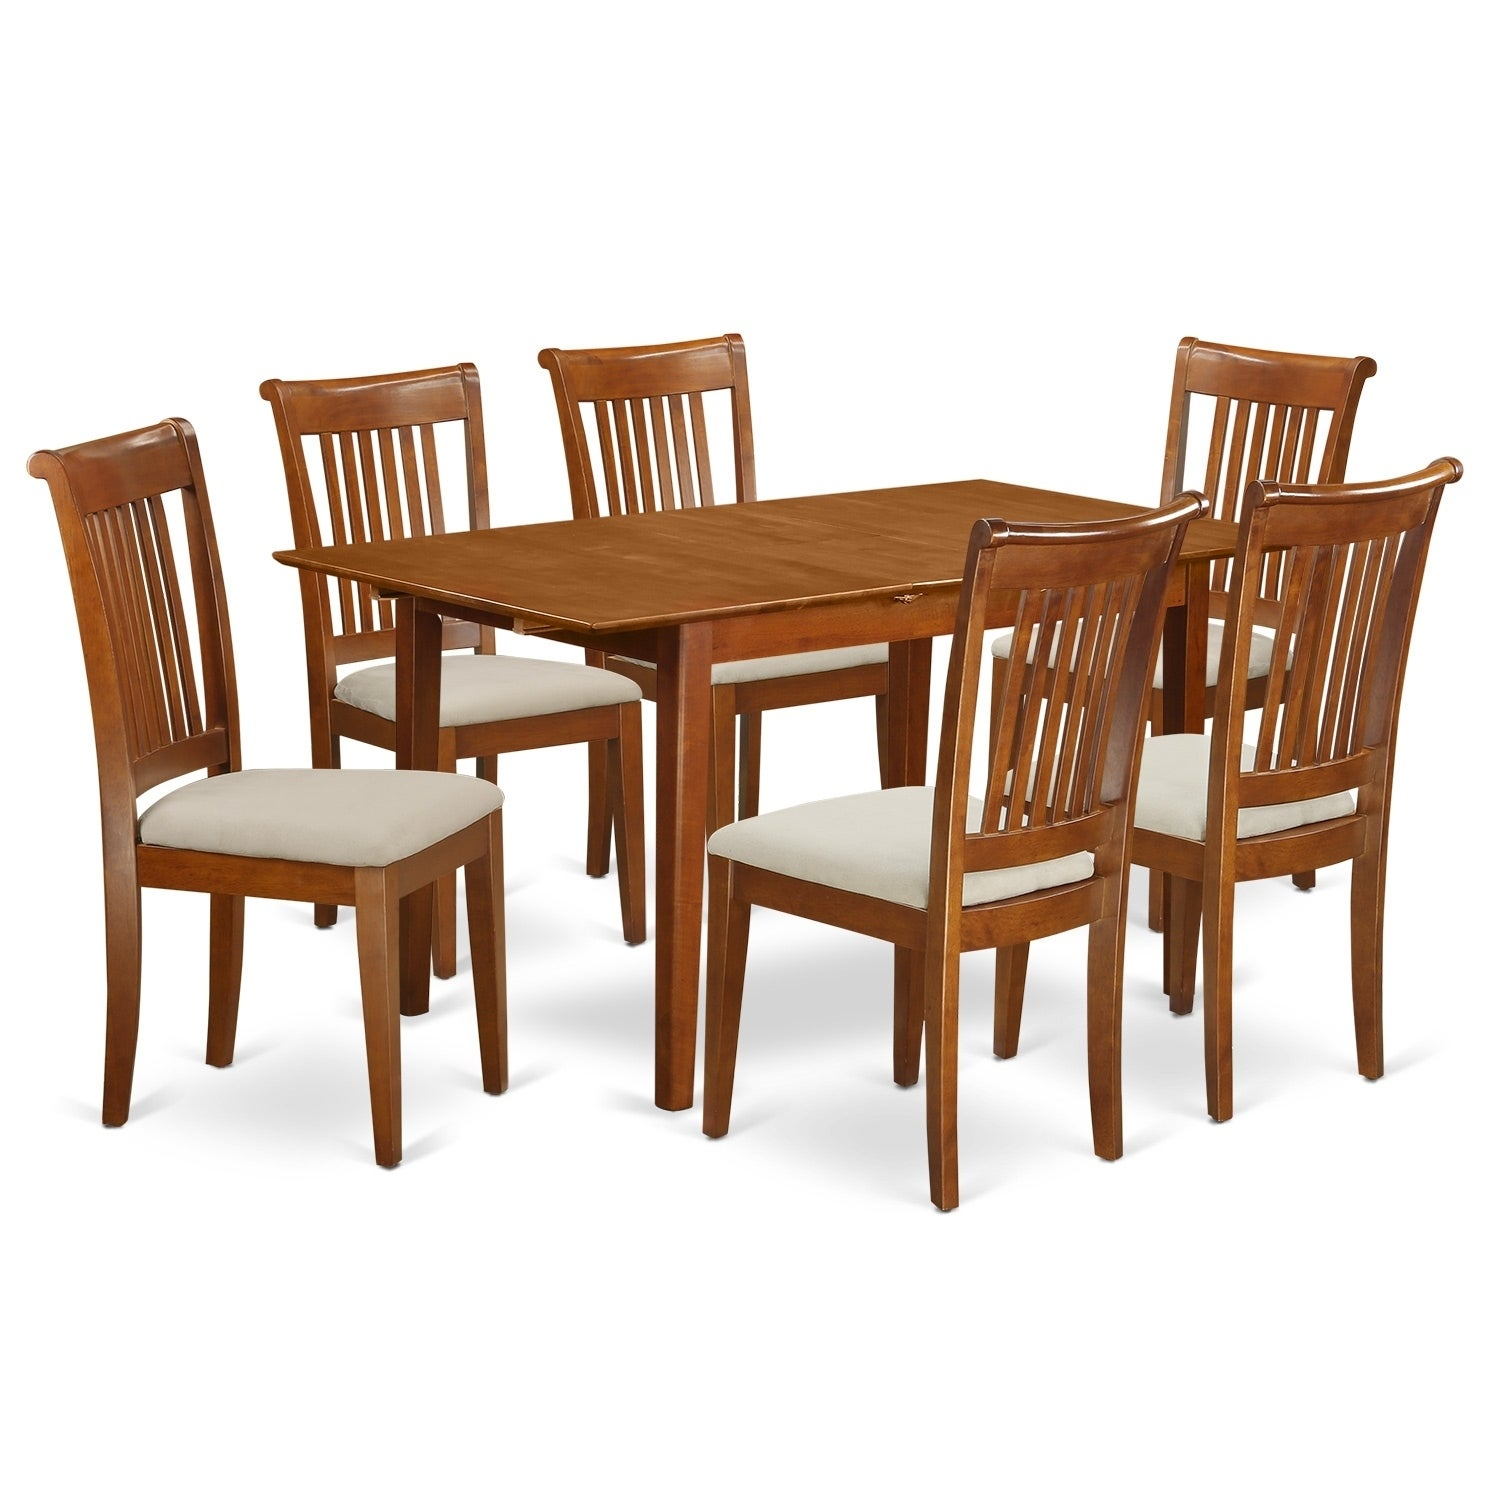 7 piece dinette set kitchen dinette picture of piece dinette set for small spaceskitchen table and dining